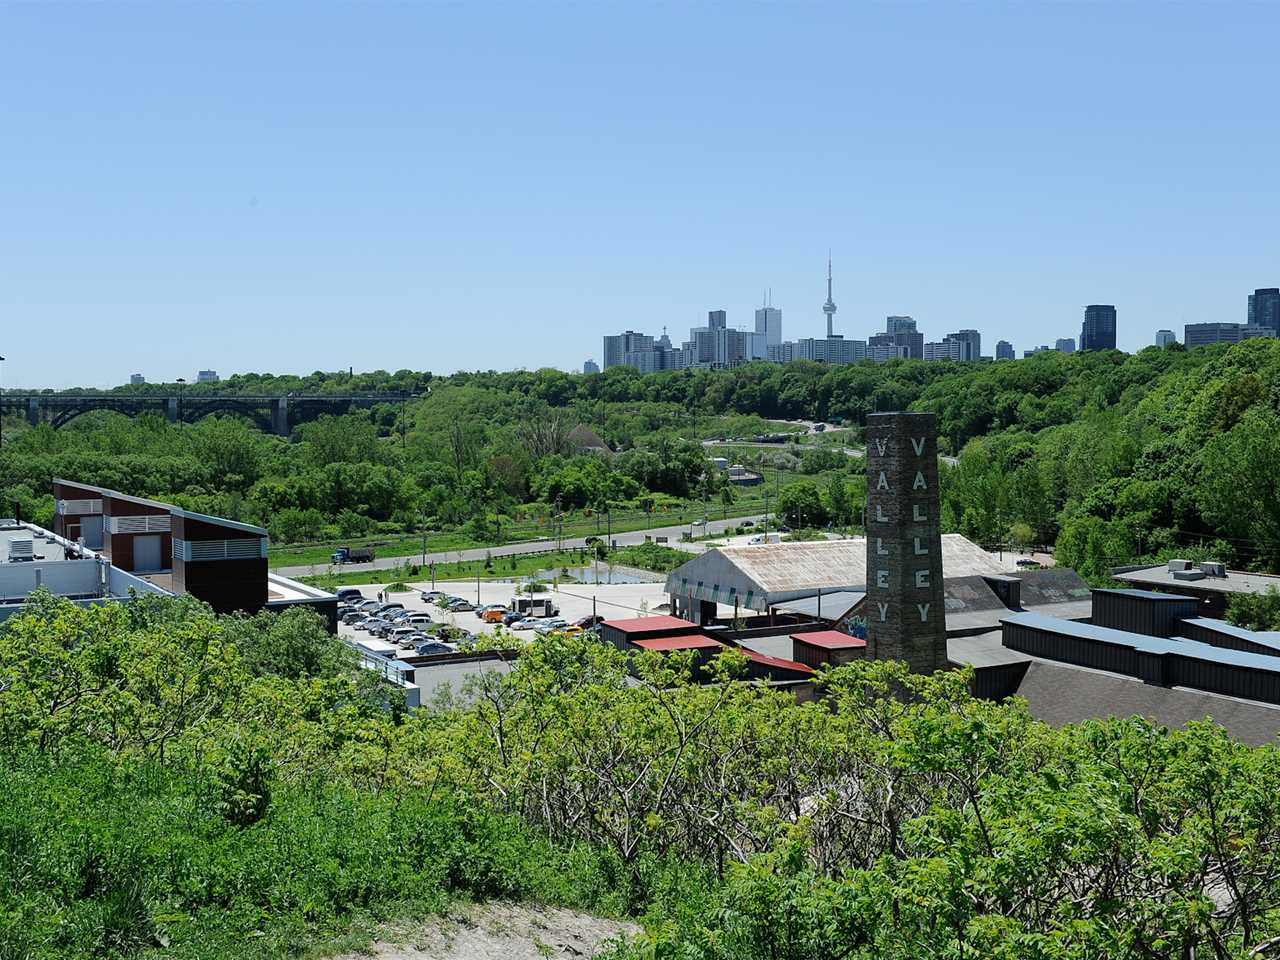 "Project update 2012 ""Evergreen Brick Works heritage site revitalization, Toronto, Canada"": An …"